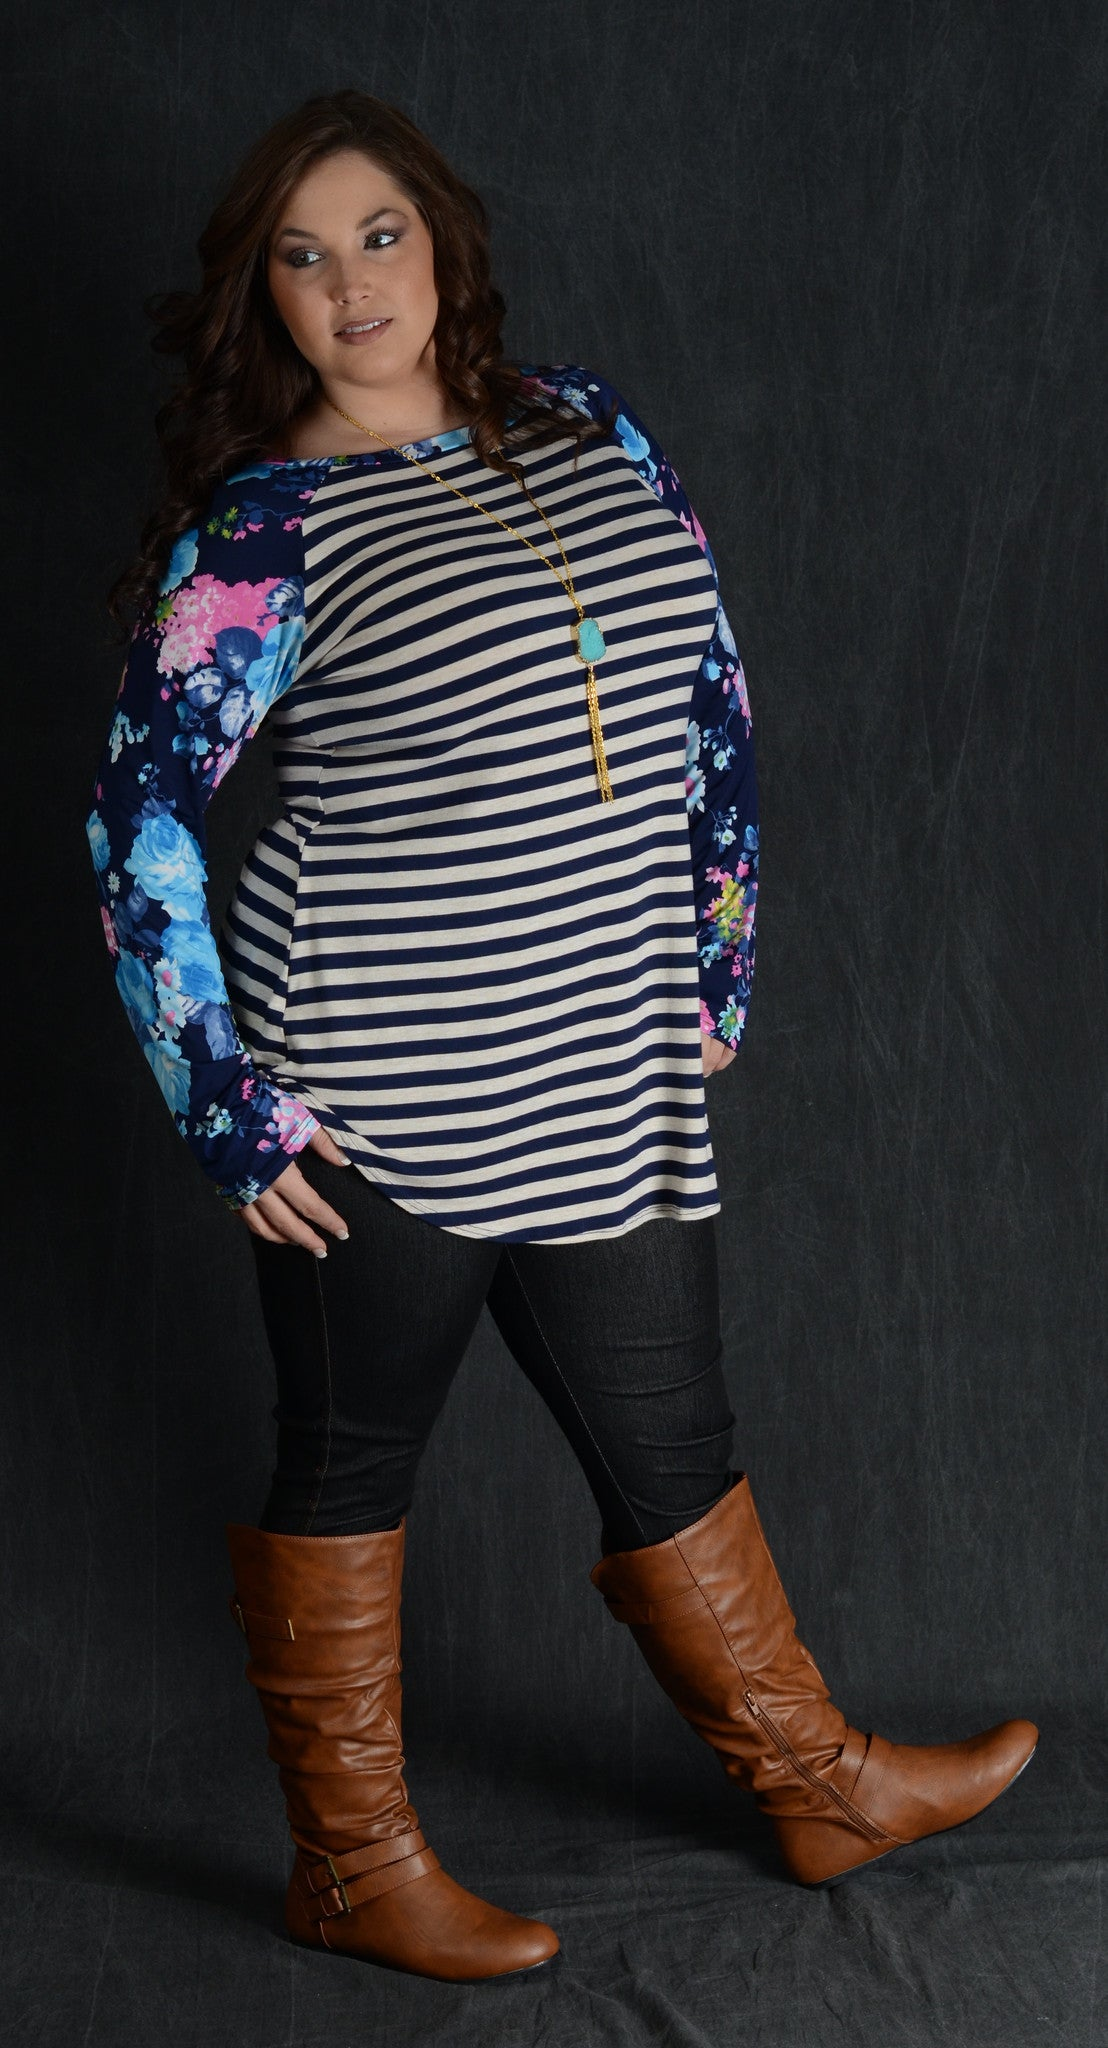 Teal Floral Sleeve Top - www.mycurvystore.com - Curvy Boutique - Plus Size